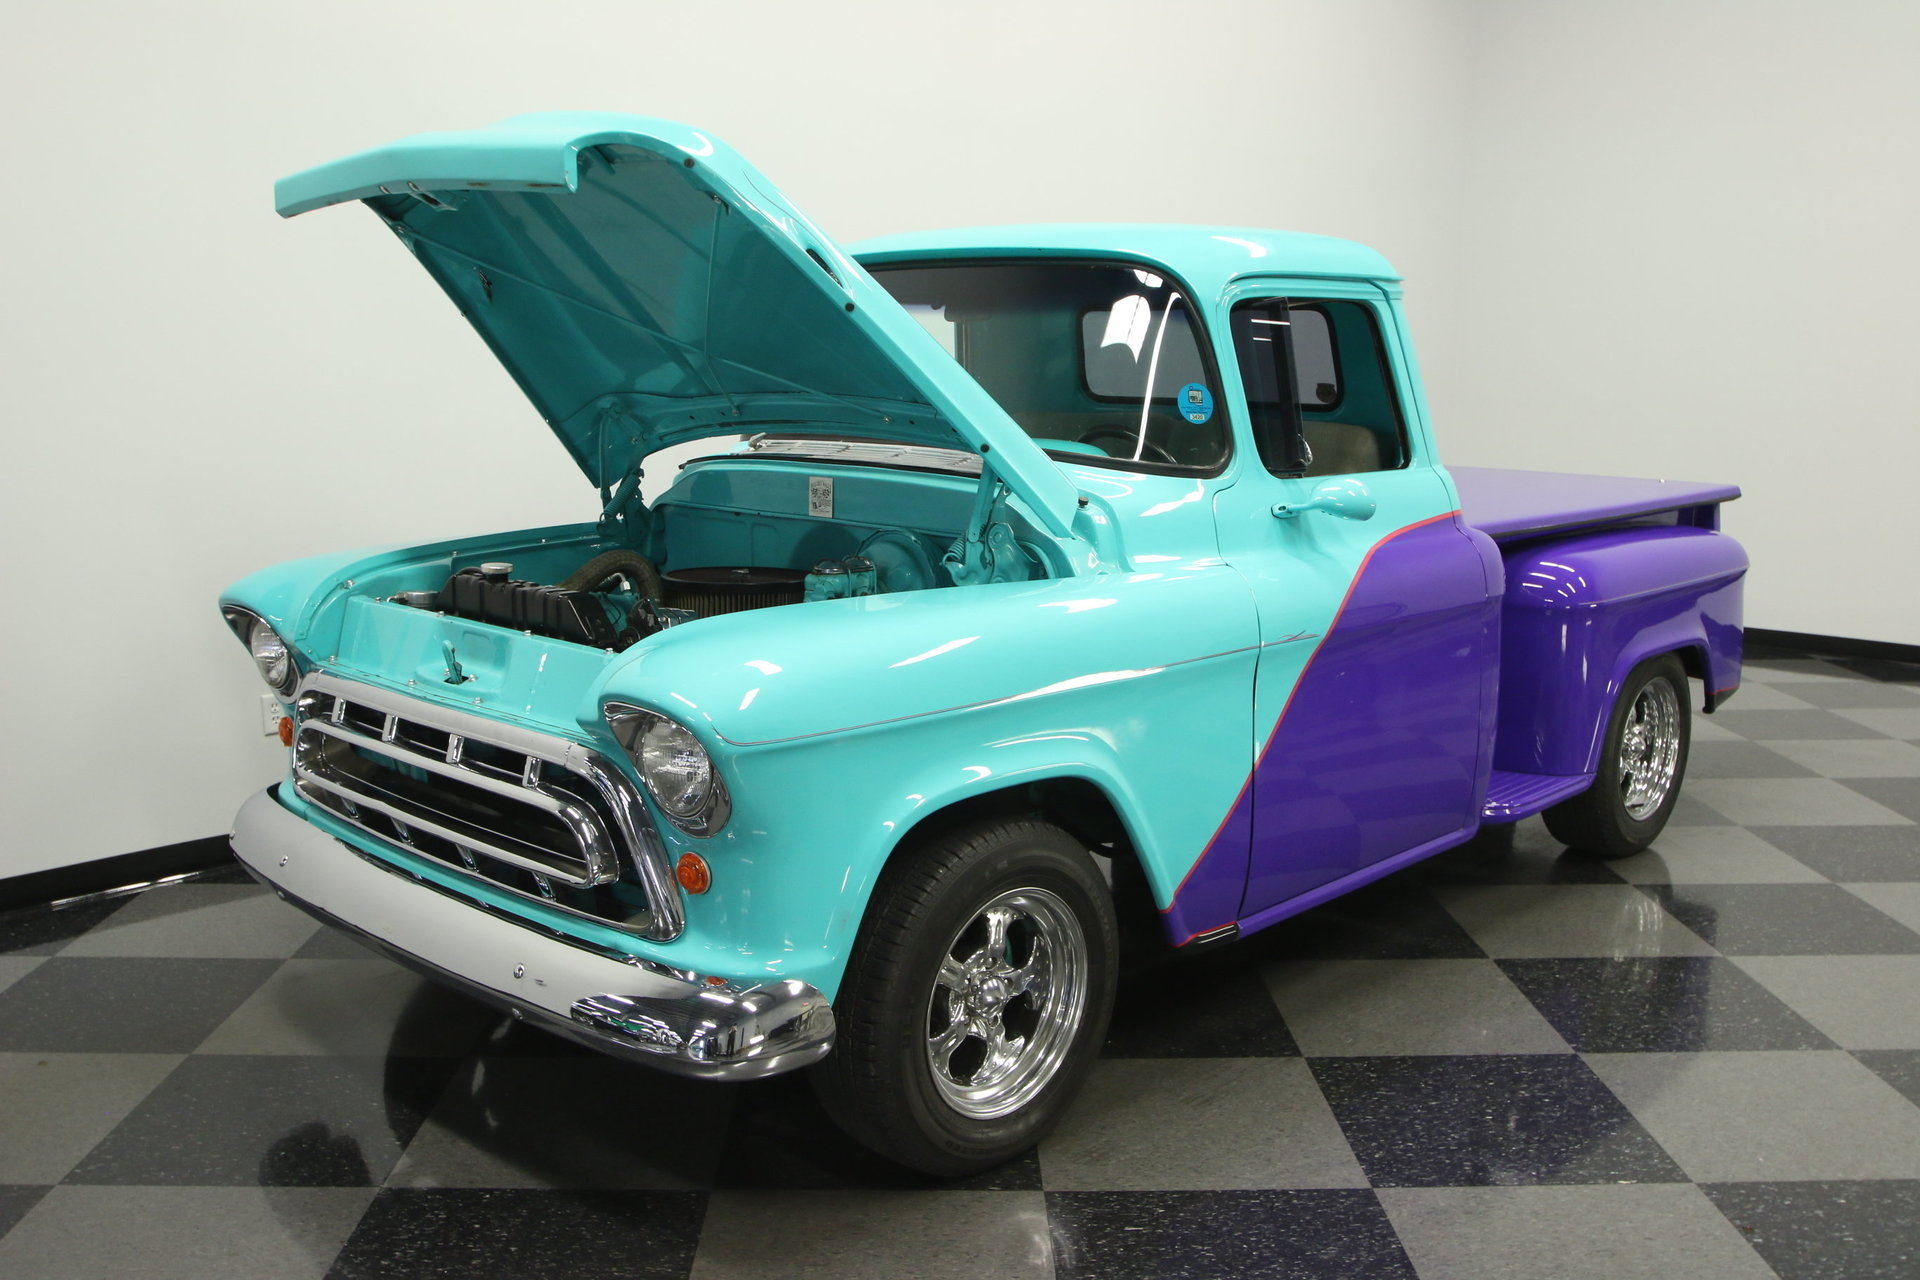 1957 Chevrolet 3100 Streetside Classics The Nations Trusted Chevy Truck Paint Colors For Sale Spincar View 360